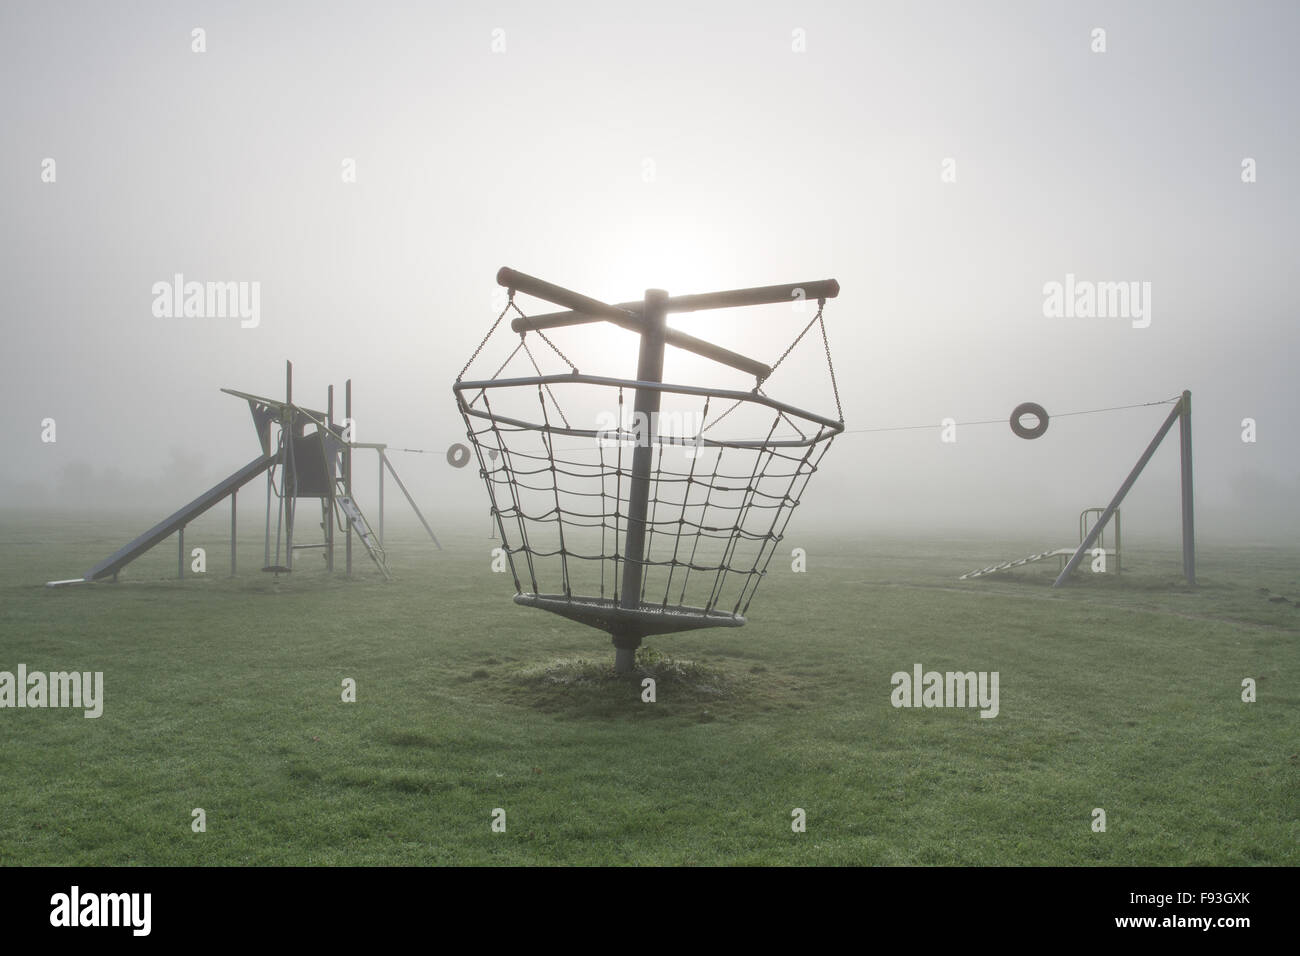 A deserted children's playground on a cold and foggy morning. - Stock Image